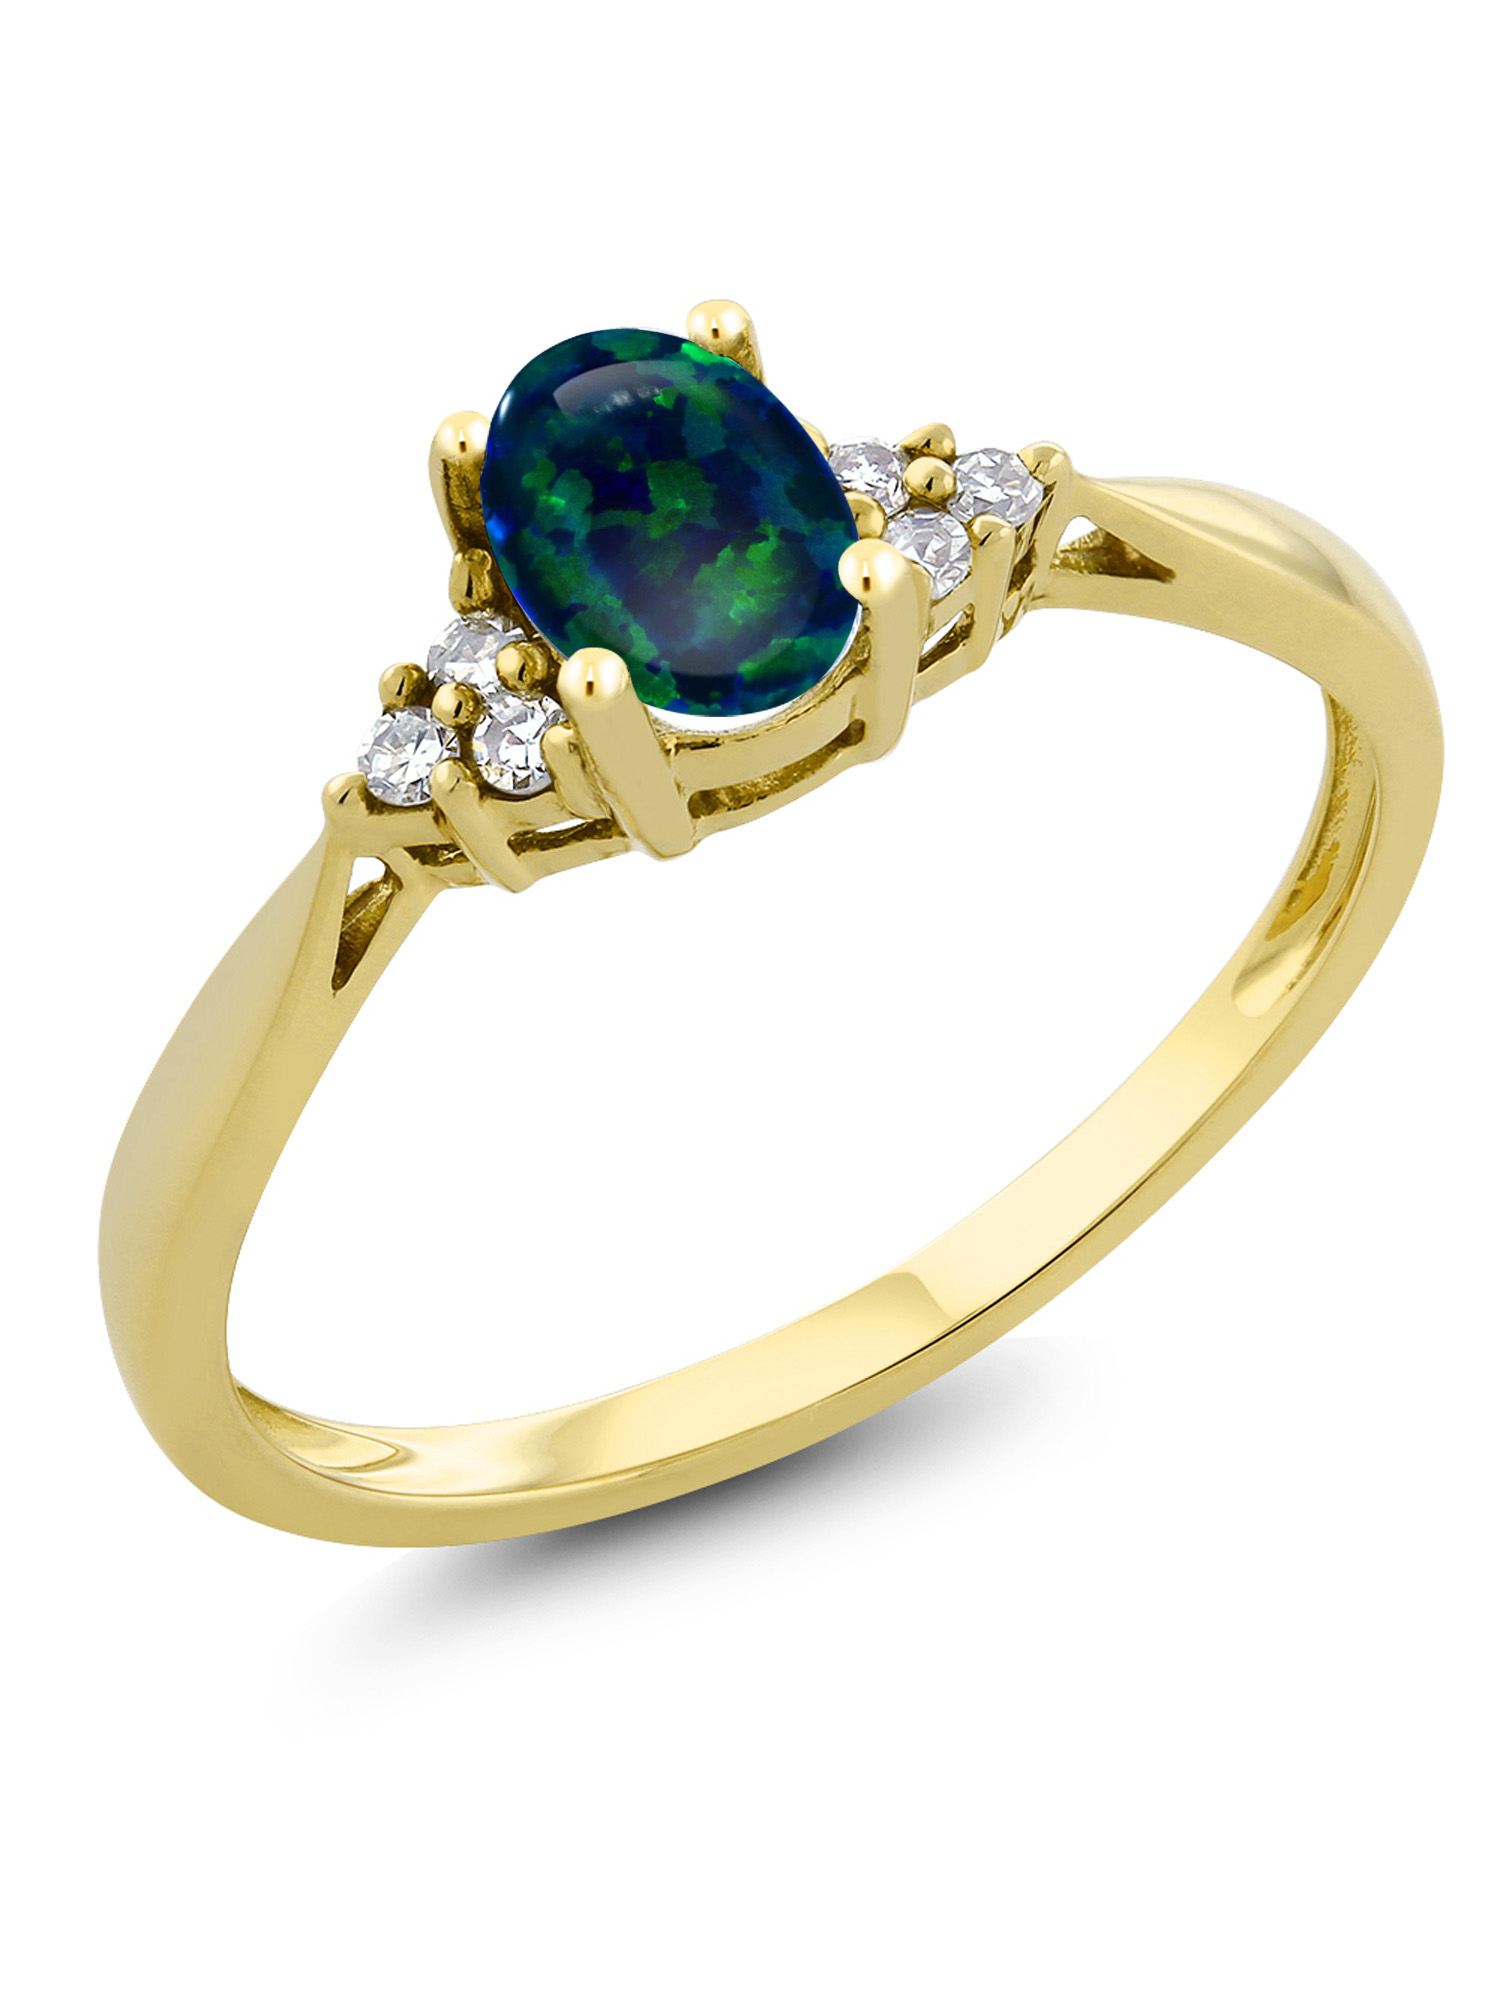 0.50 Ct Oval Cabochon Green Simulated Opal and Diamond 14K Yellow Gold Ring by